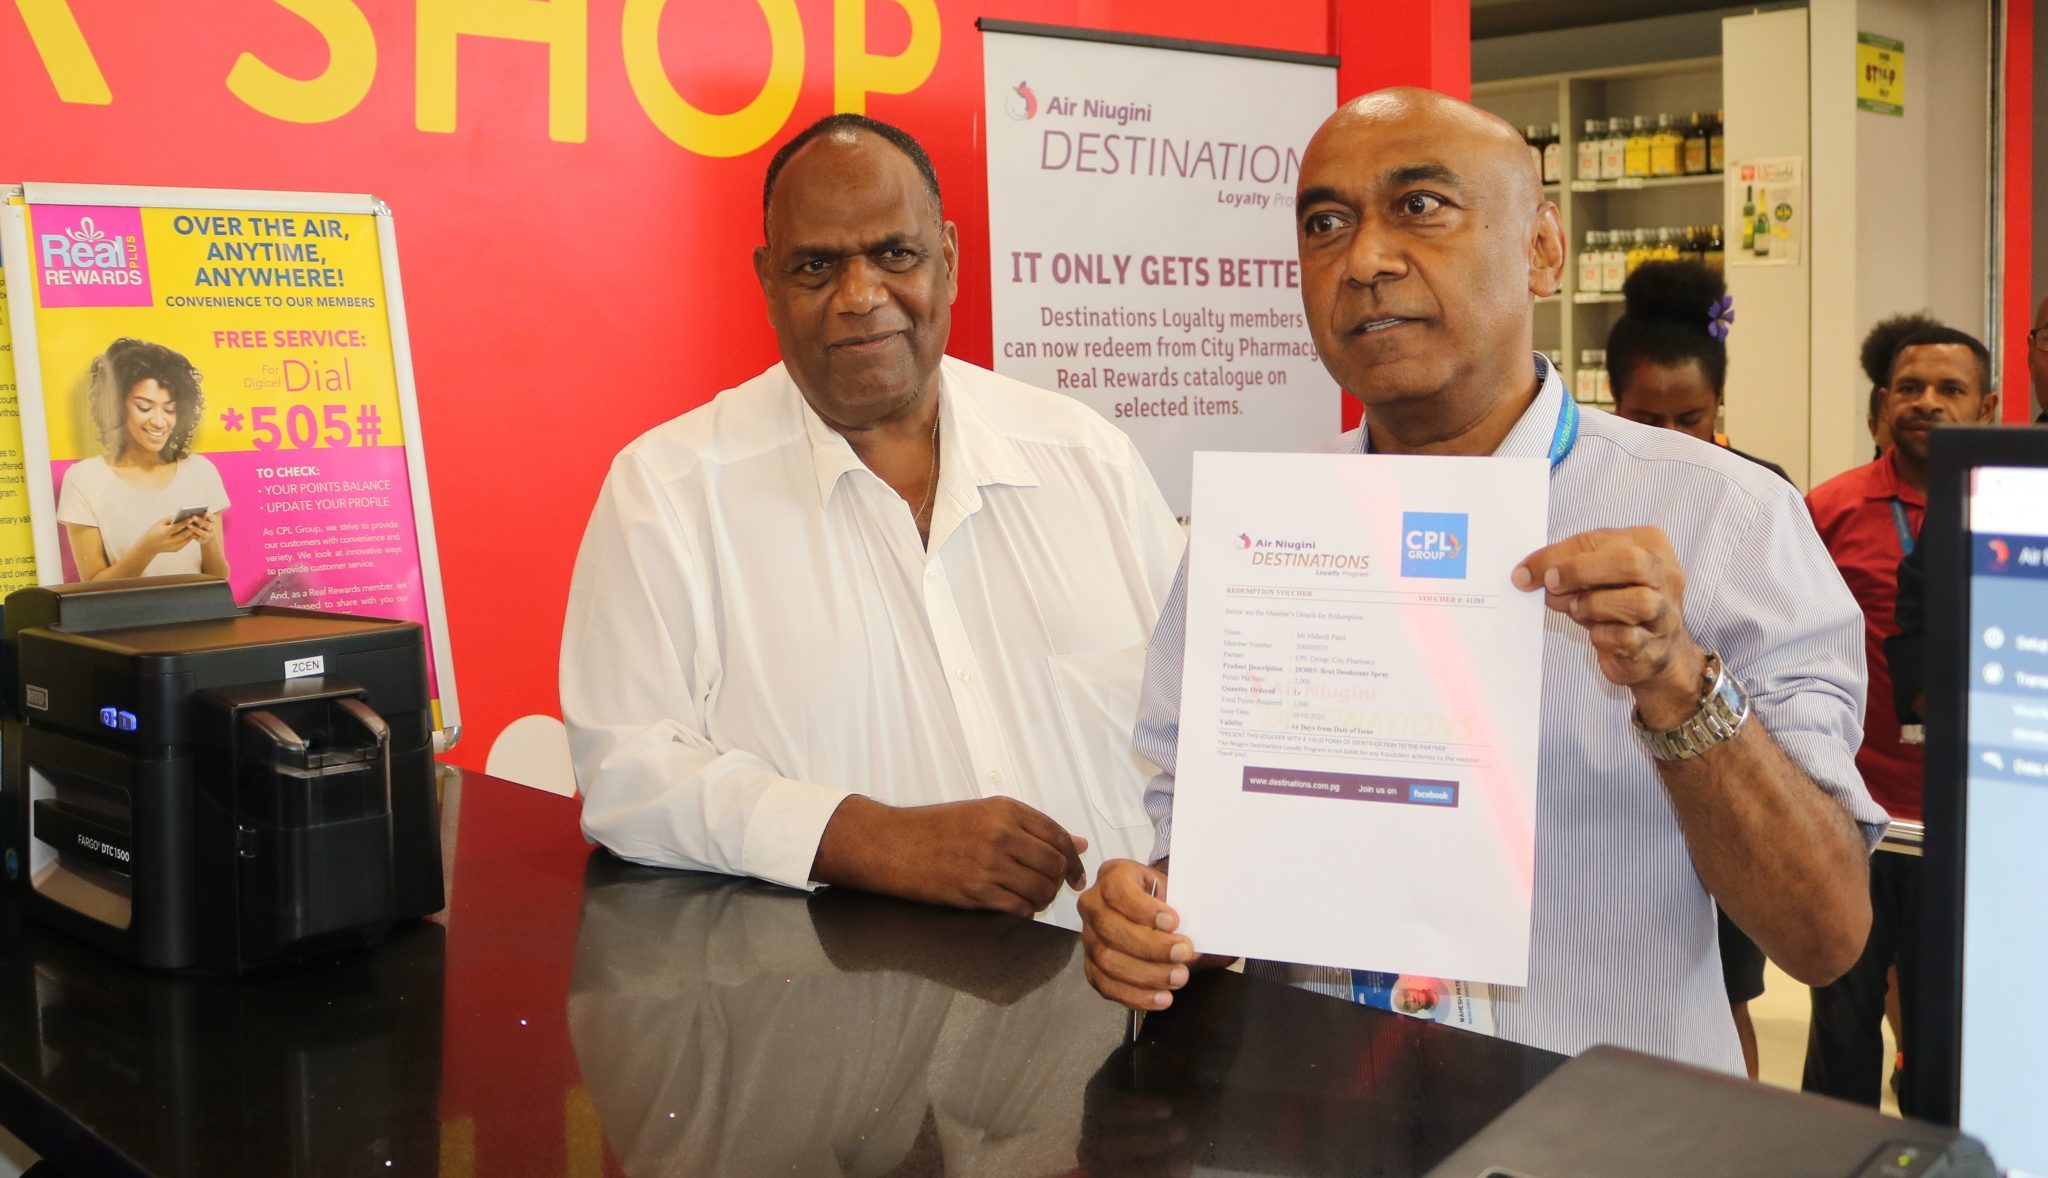 Air Niugini And City Pharmacy Partner In Redemption Program